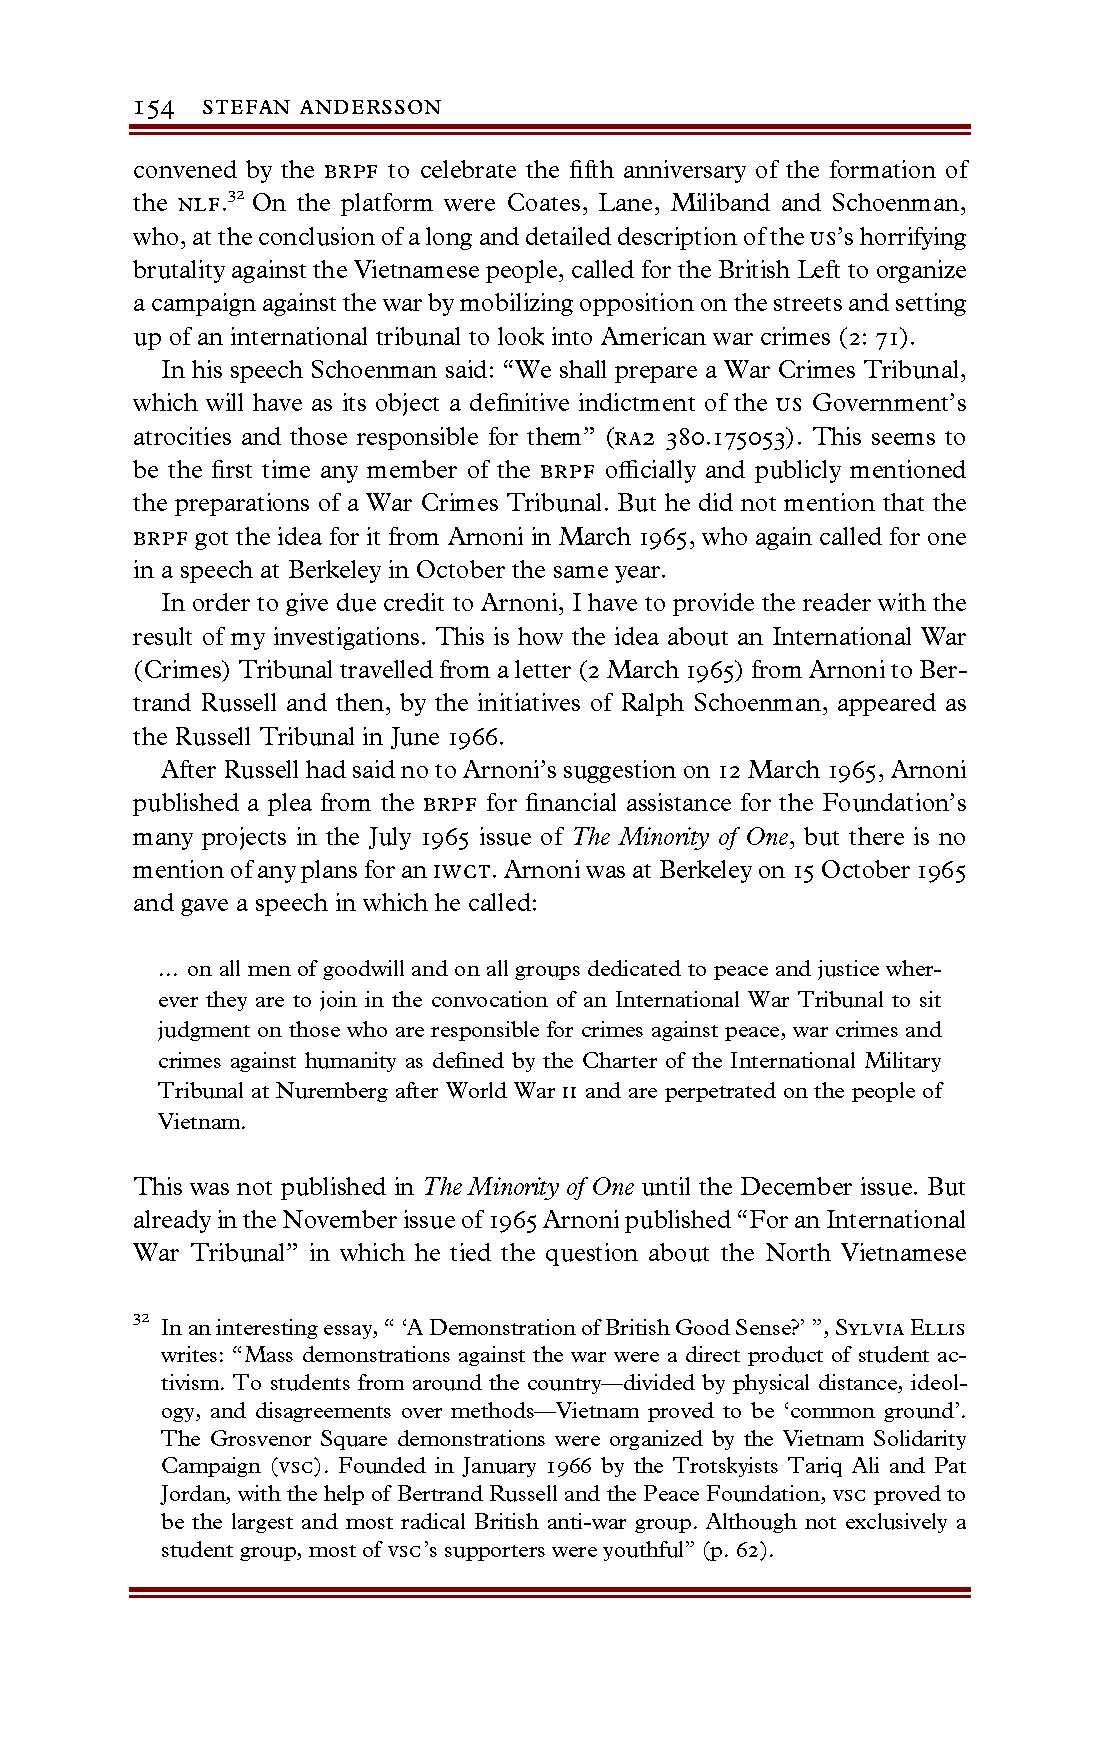 Anderson-- Pages from RJ 3402 050 red-5 (2)-1_Page_20